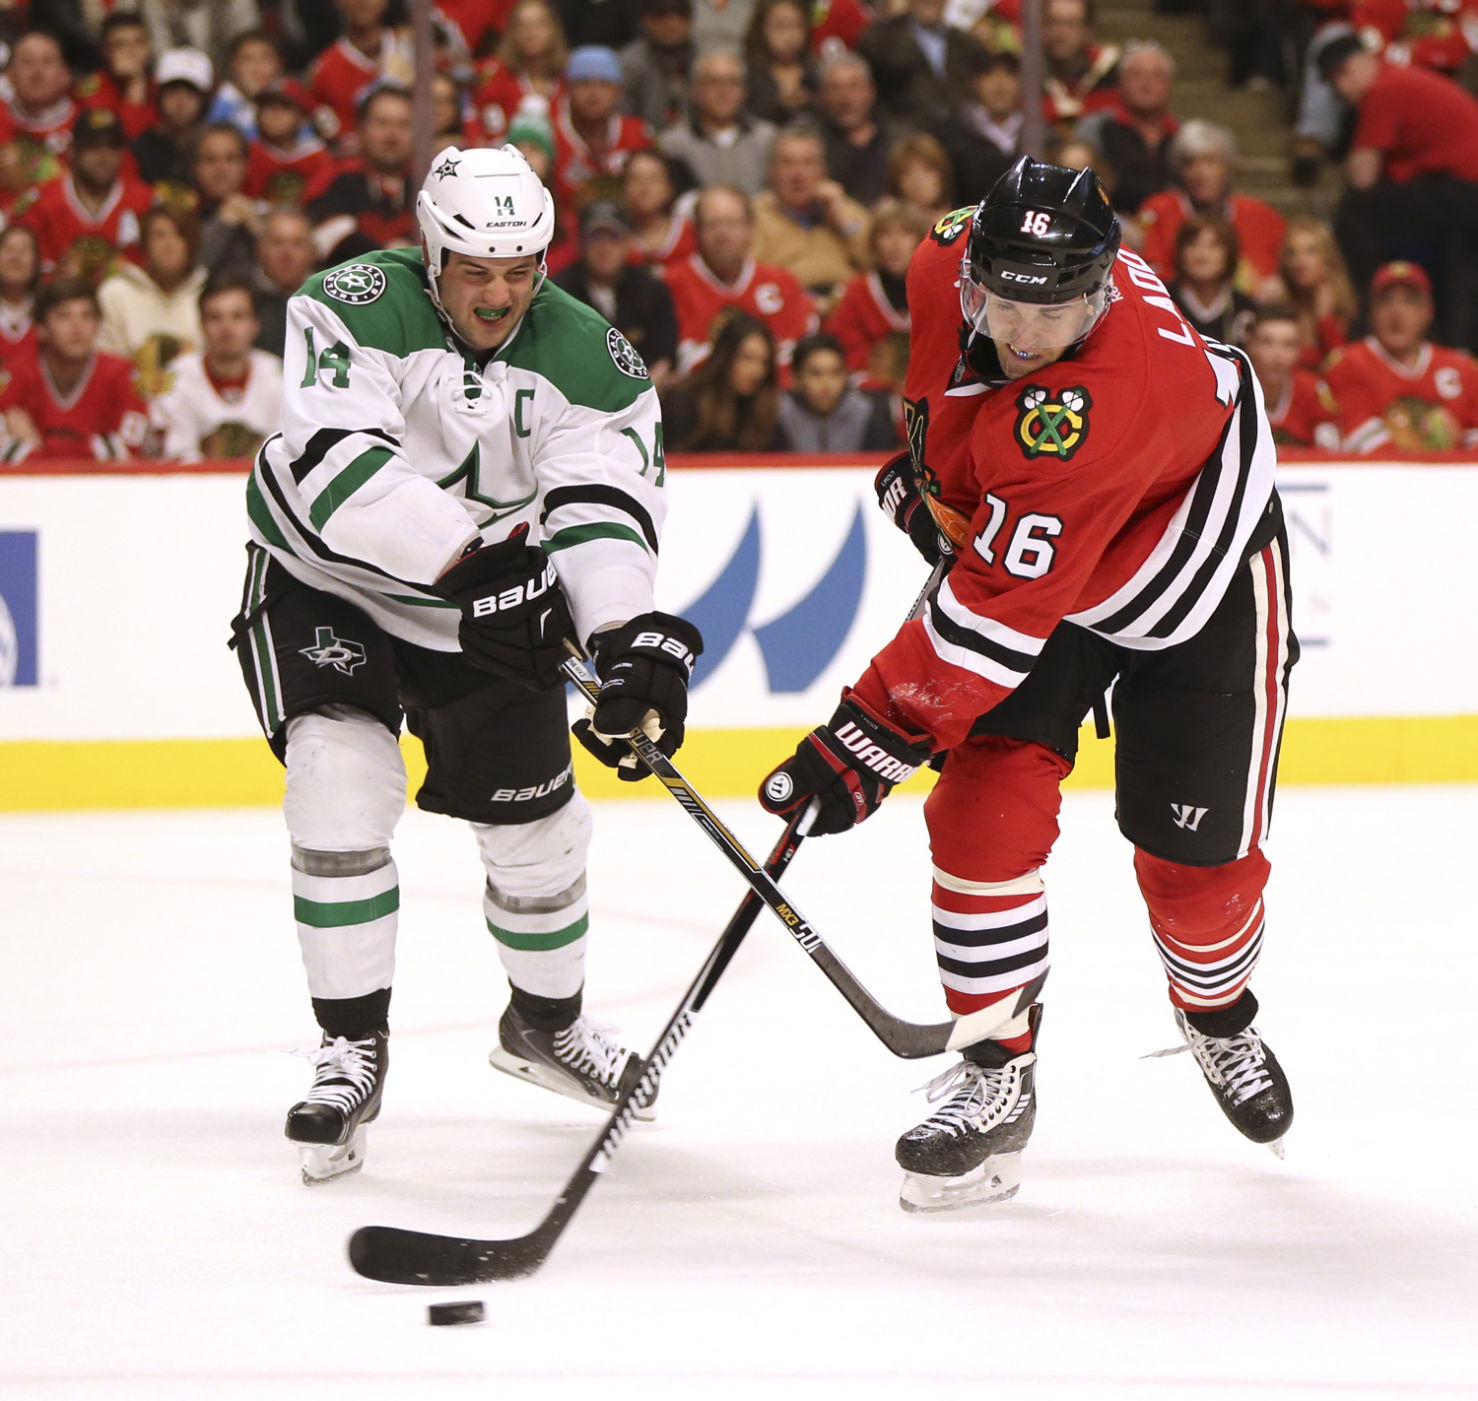 Chicago Blackhawks left wing Andrew Ladd (16) shoots the pack away from Dallas Stars left wing Jamie Benn (14) during the first period of their game on March 22, 2016 at the United Center in Chicago. (Nuccio DiNuzzo/Chicago Tribune/TNS)